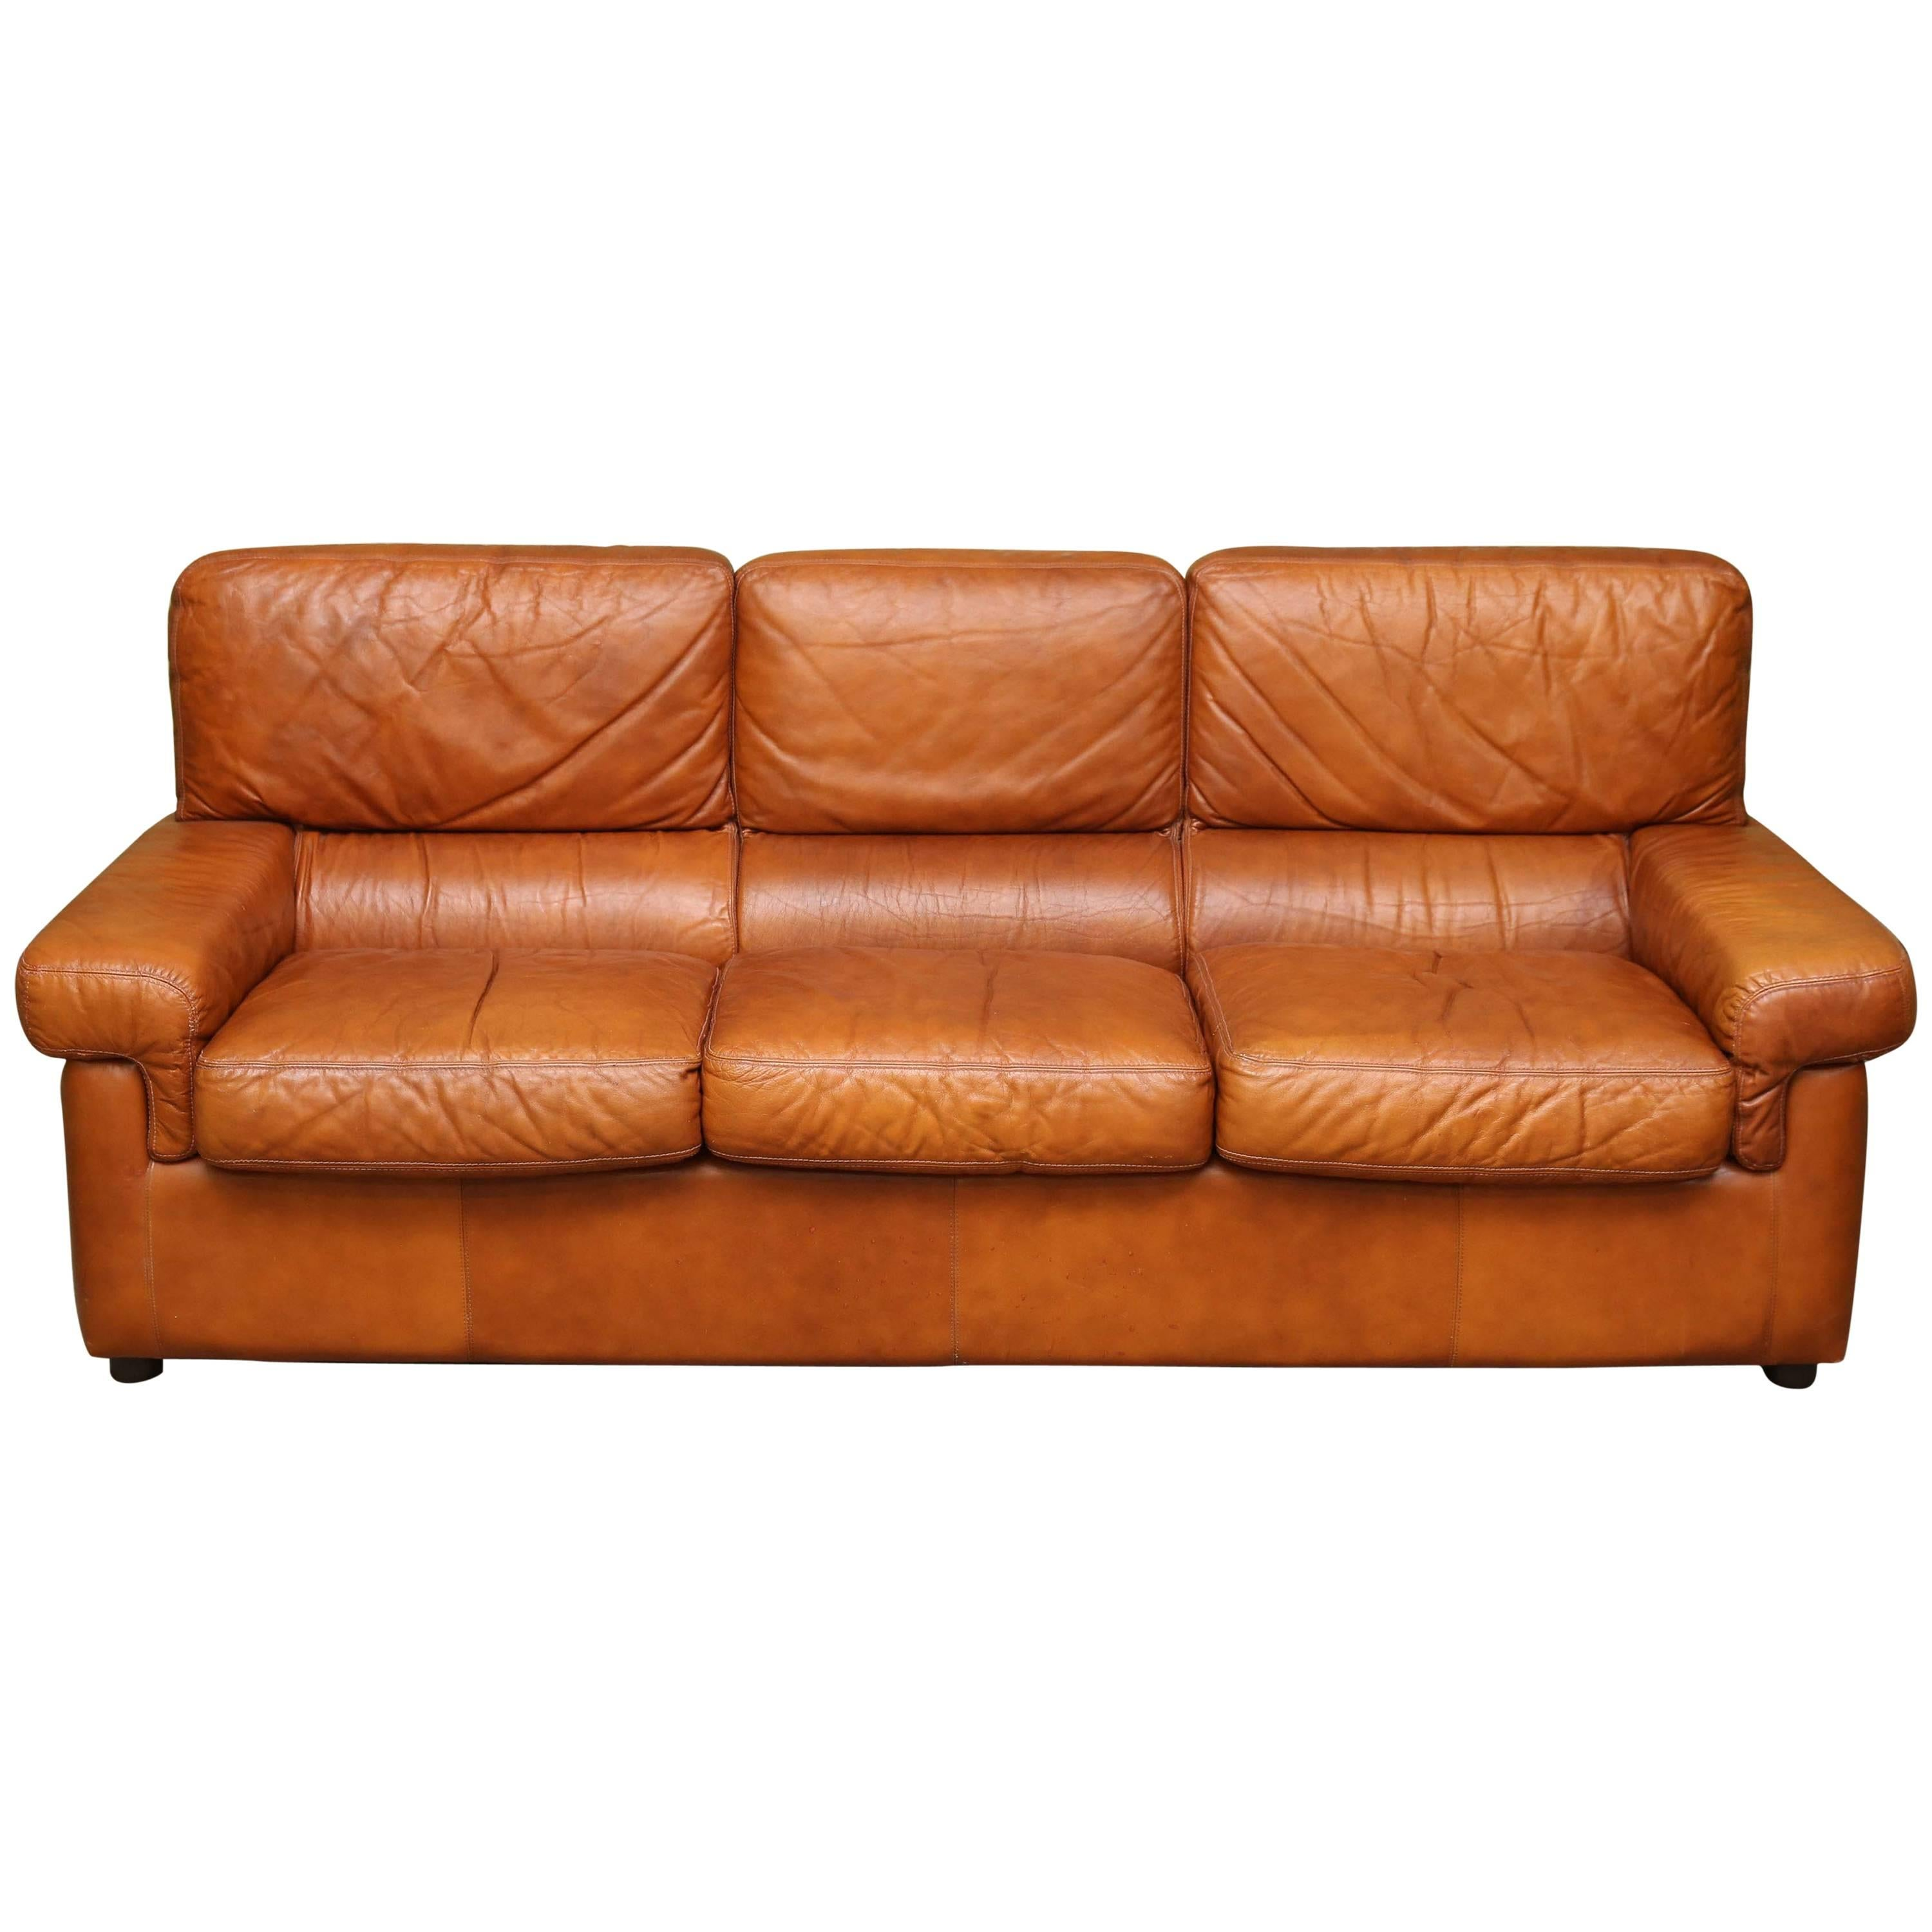 There are two options for making your own leather furnitu. Antique & Vintage Sofas For Sale in Houston Near Me